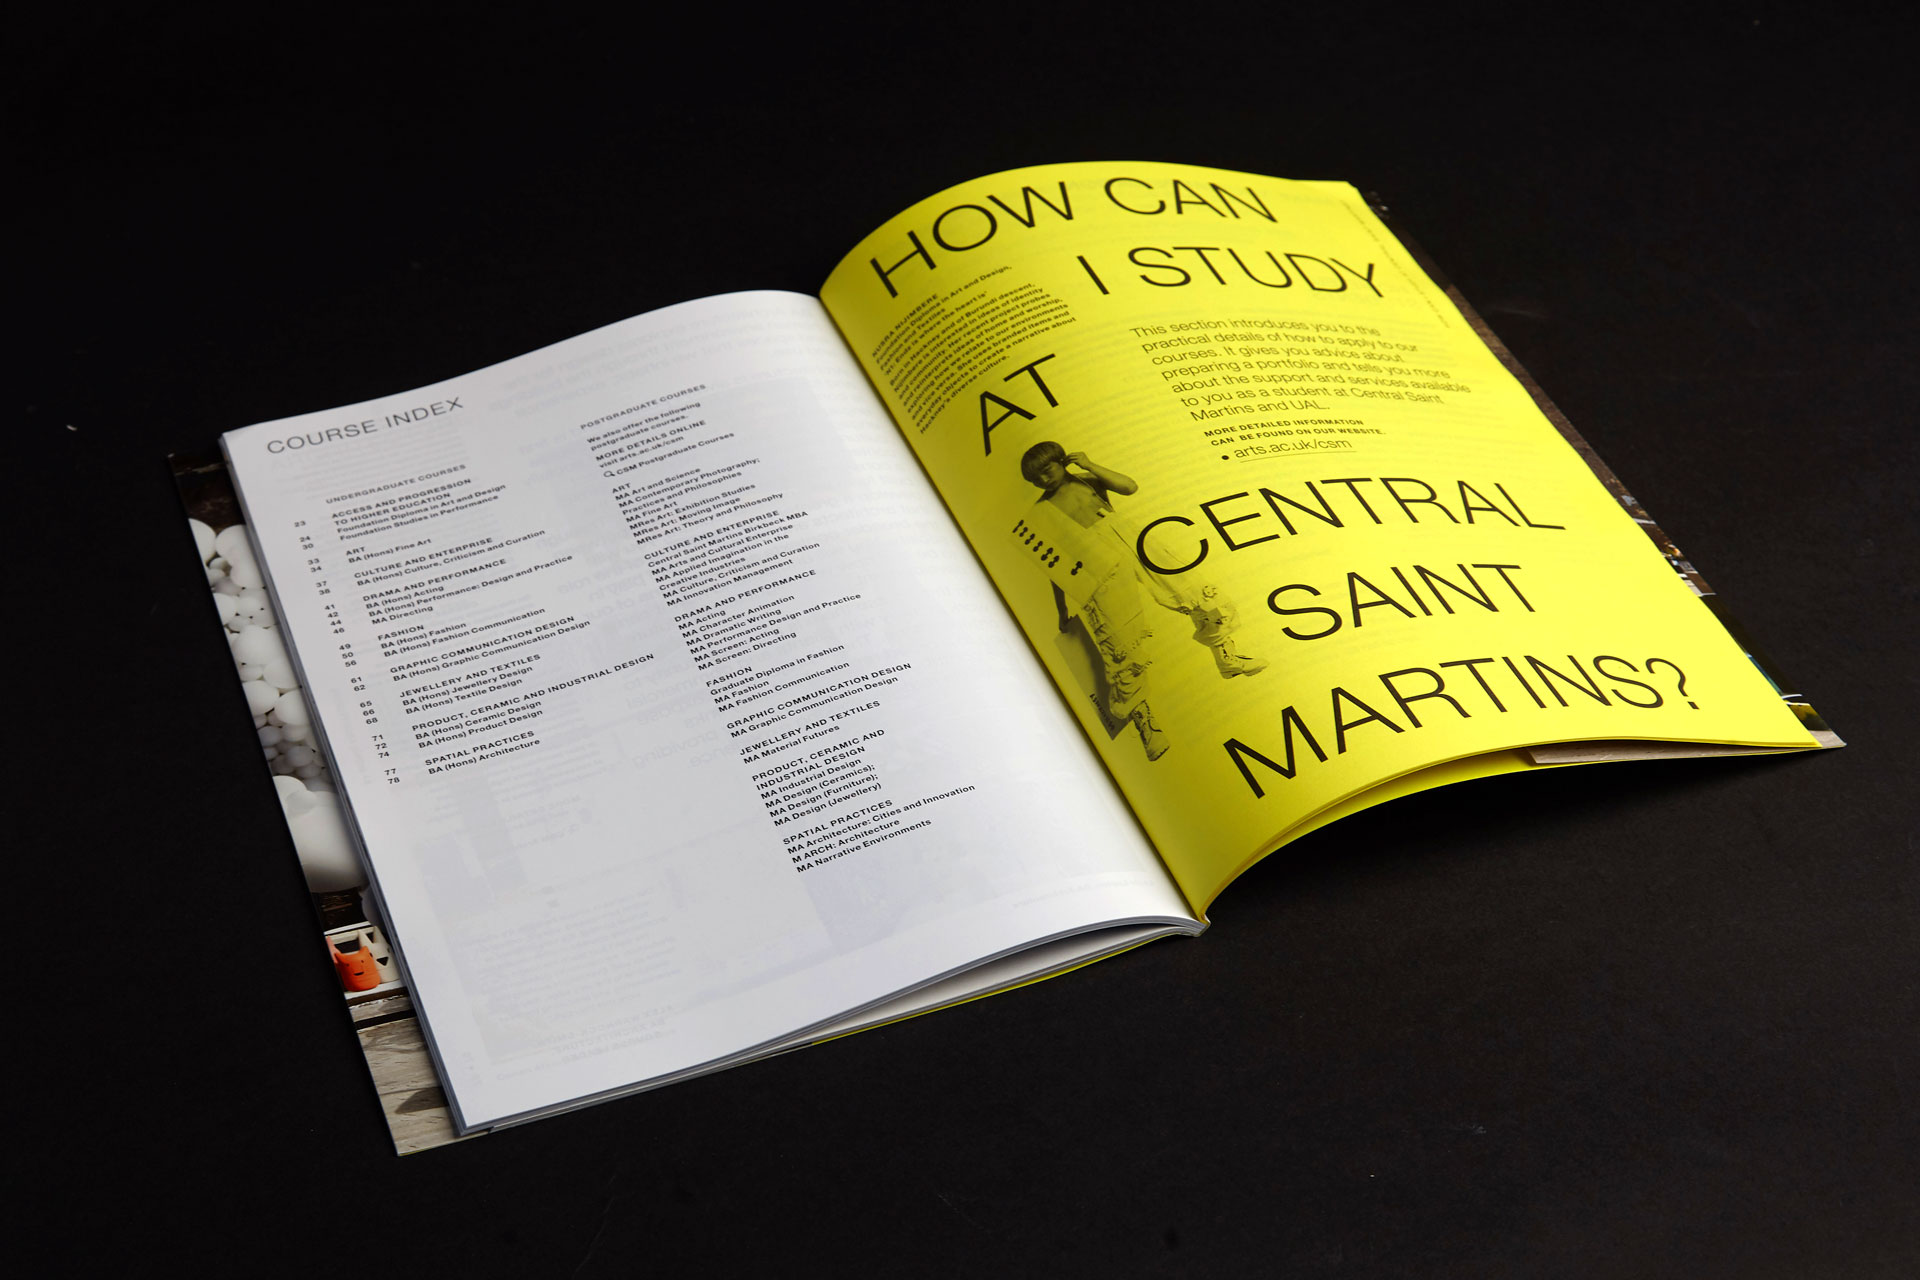 A guide to Central Saint Martins. 1st edition 5